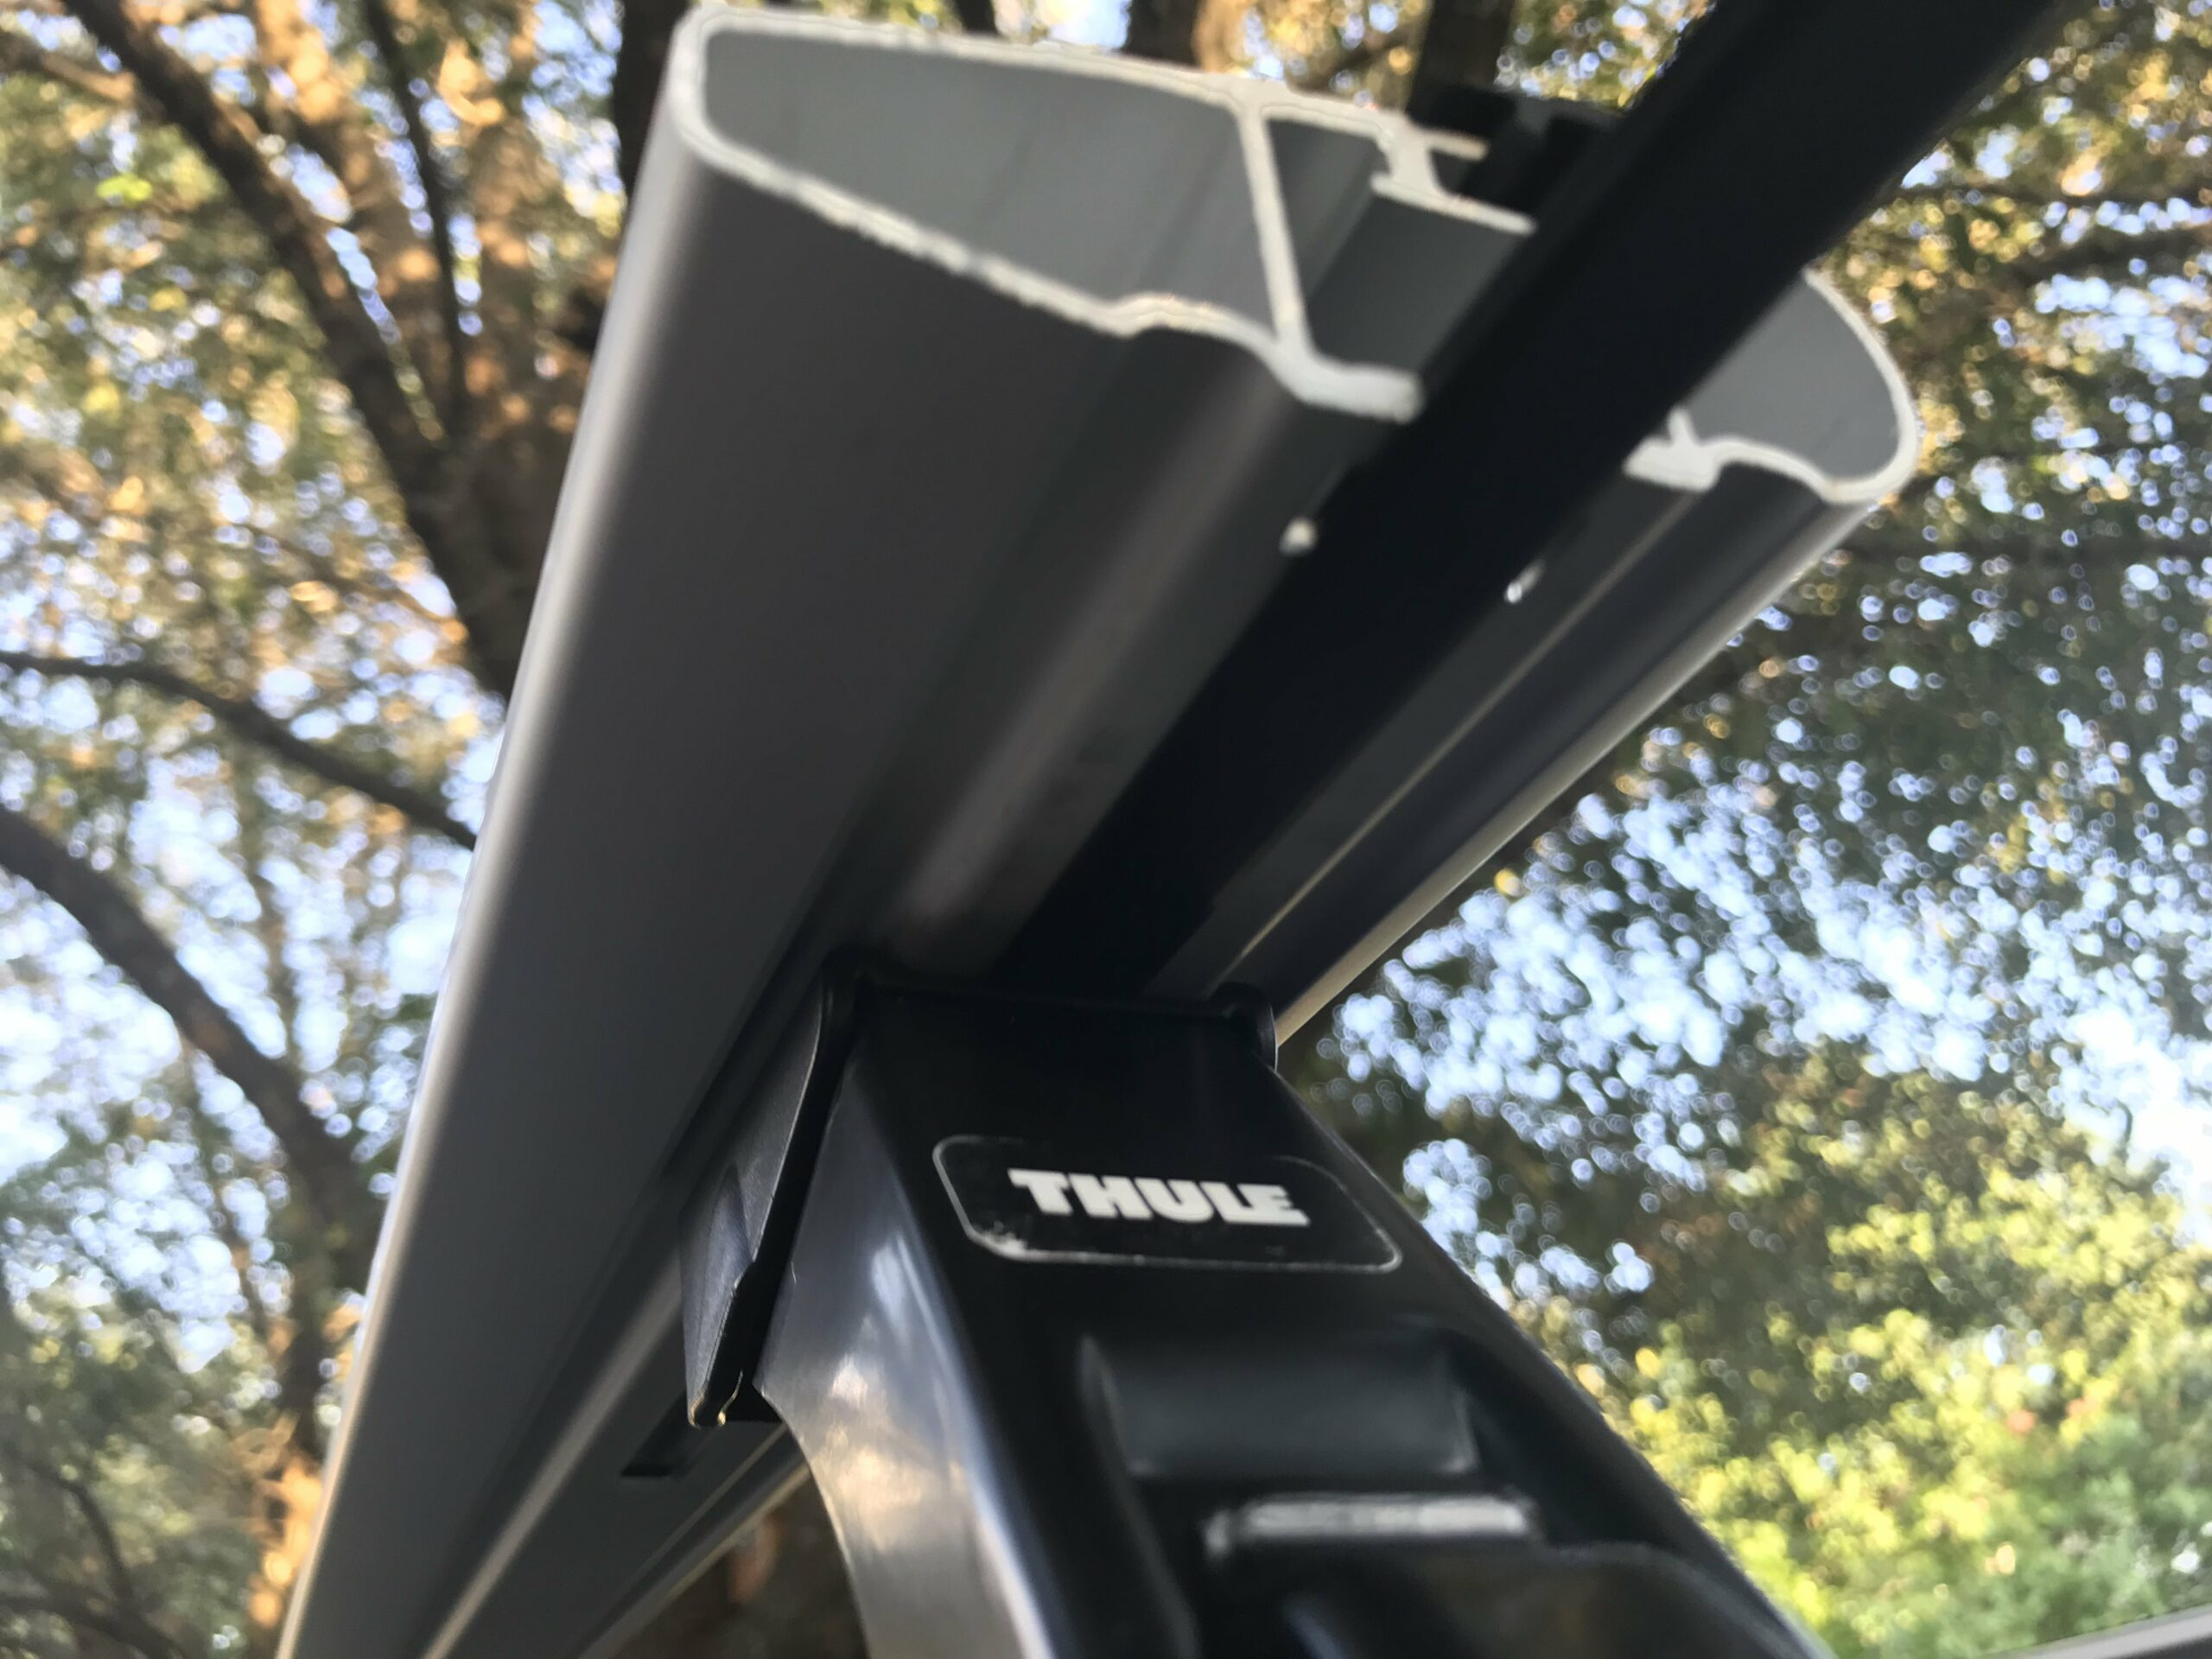 Thule Jeep Wrangler roof rack install